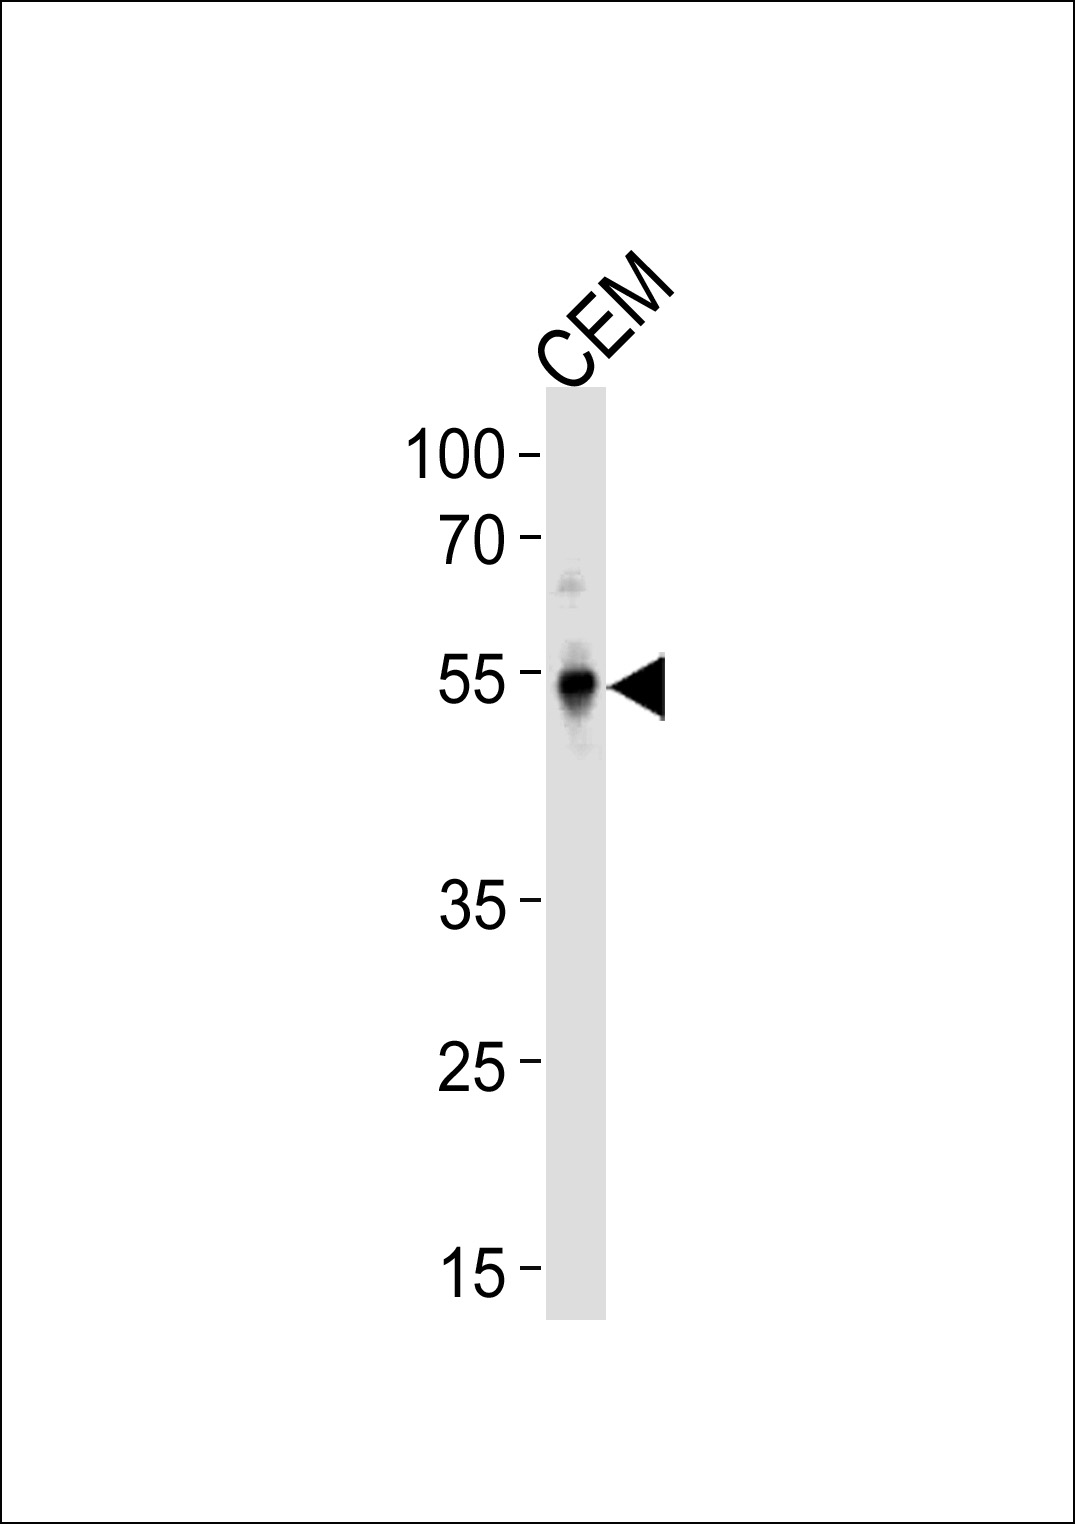 KLF5 Antibody western blot of CEM cell line lysates (35 ug/lane). The KLF5 antibody detected the KLF5 protein (arrow).